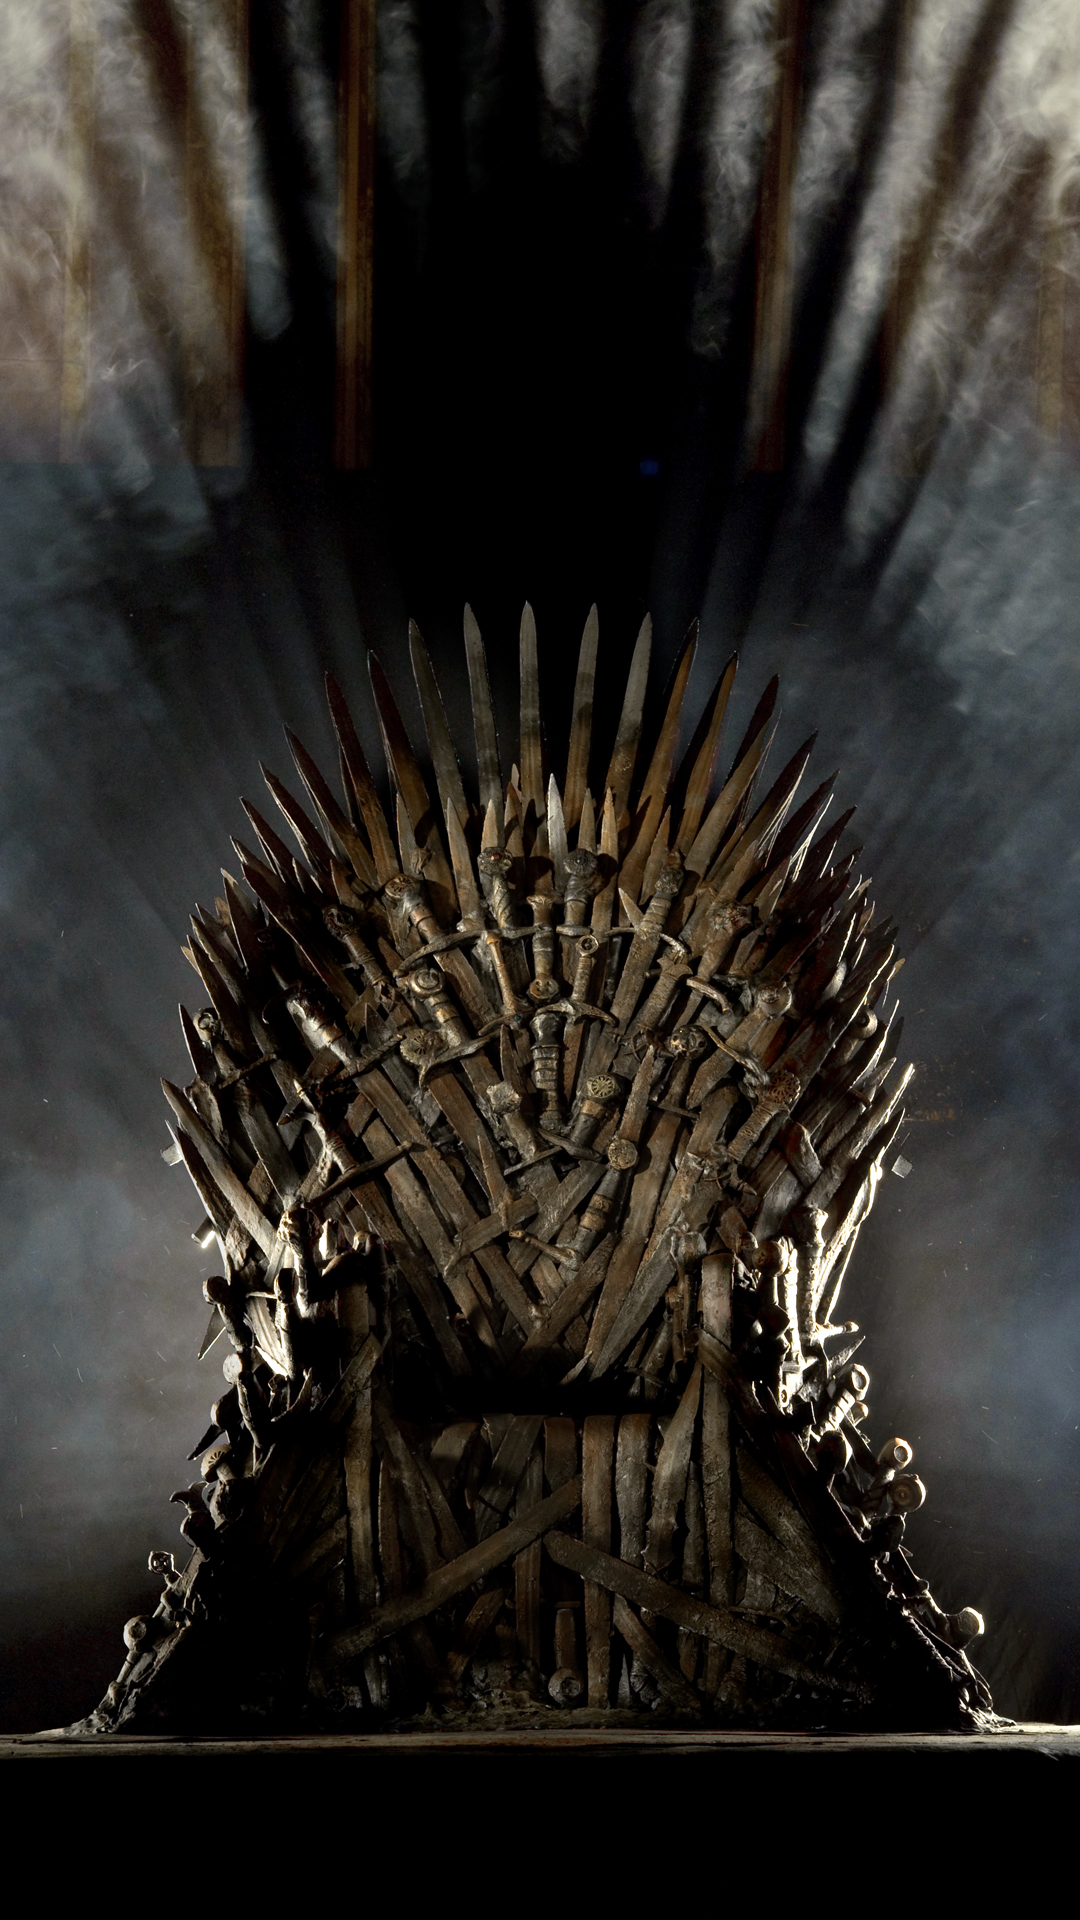 game-of-thrones-iron-throne-android-wallpaper